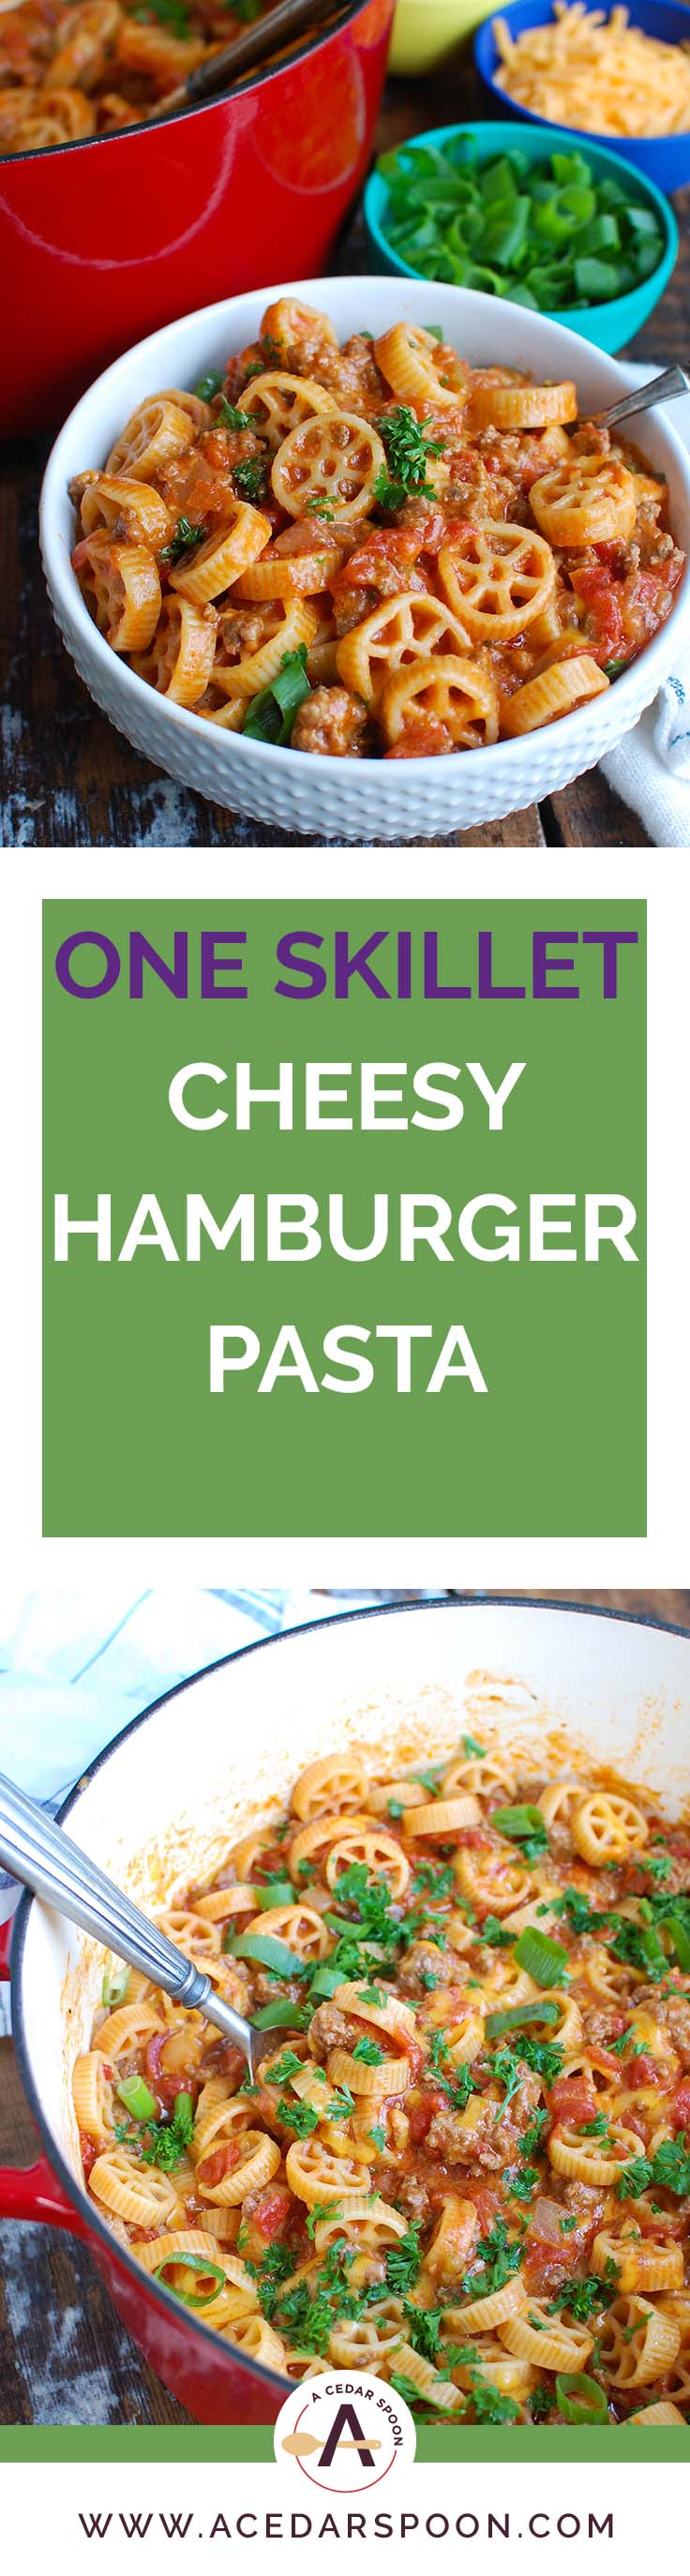 One Skillet Cheesy Hamburger Pasta is a quick and easy one skillet or pot meal mixing ground beef, tomatoes, cheese and pasta to create a cheesy hamburger dish.  The leftovers reheat wonderfully so you have options for lunch and dinner later in the week!